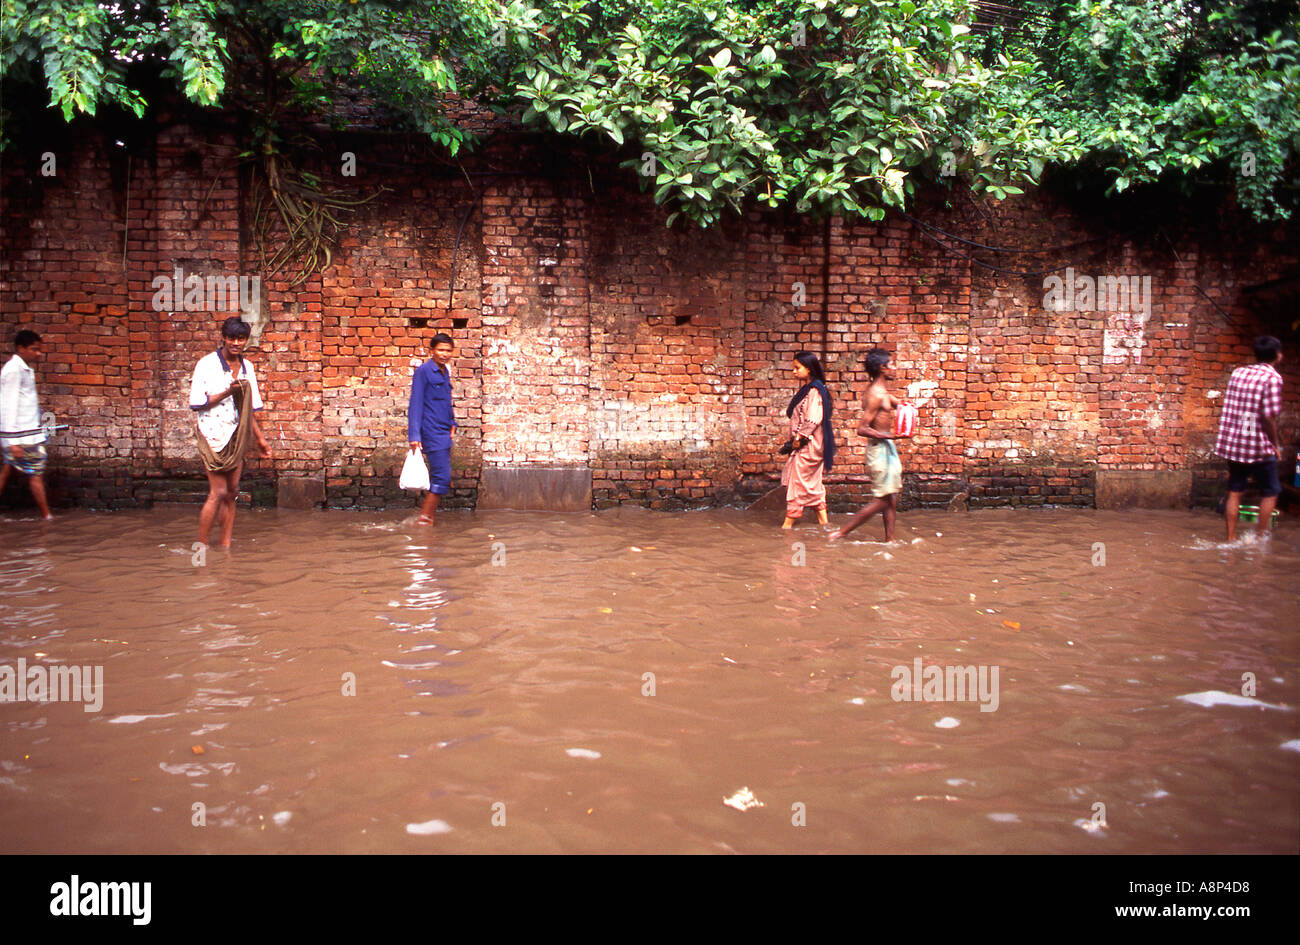 Locals dealing with the floods due to the Monsoon rains in Calcutta - Stock Image